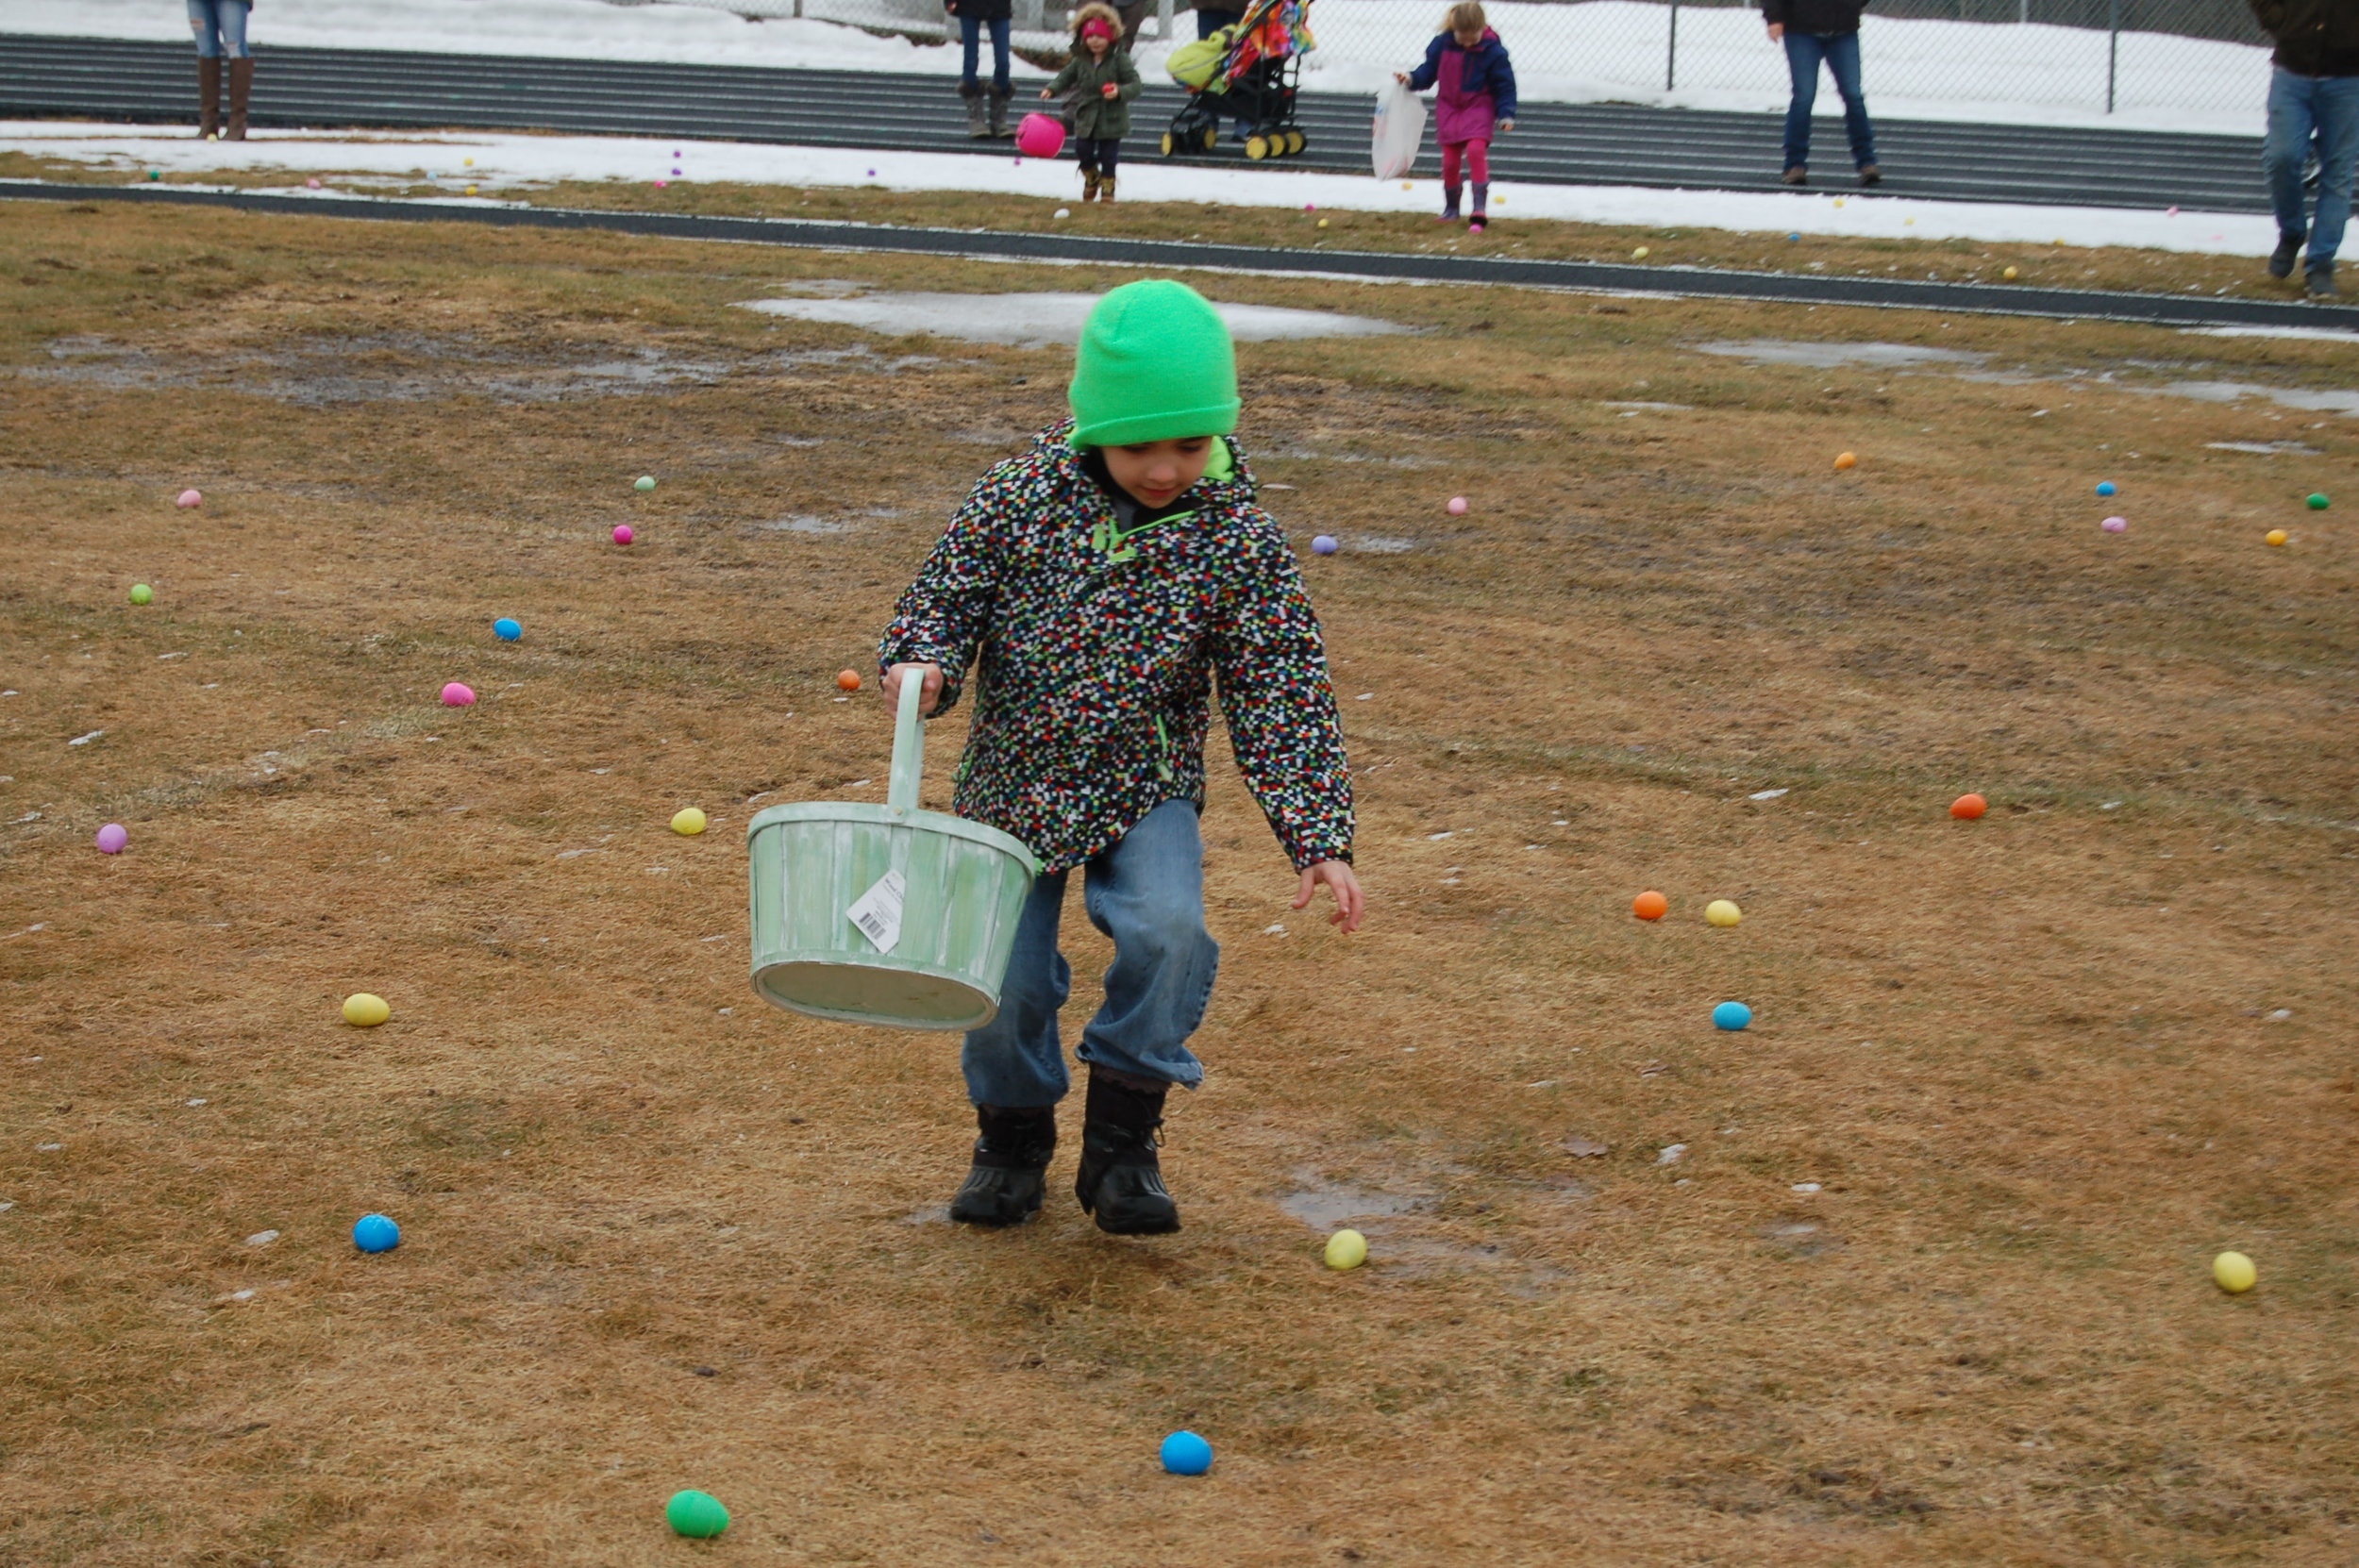 Frankie Tremblay made haste to fill his basket with easter eggs.